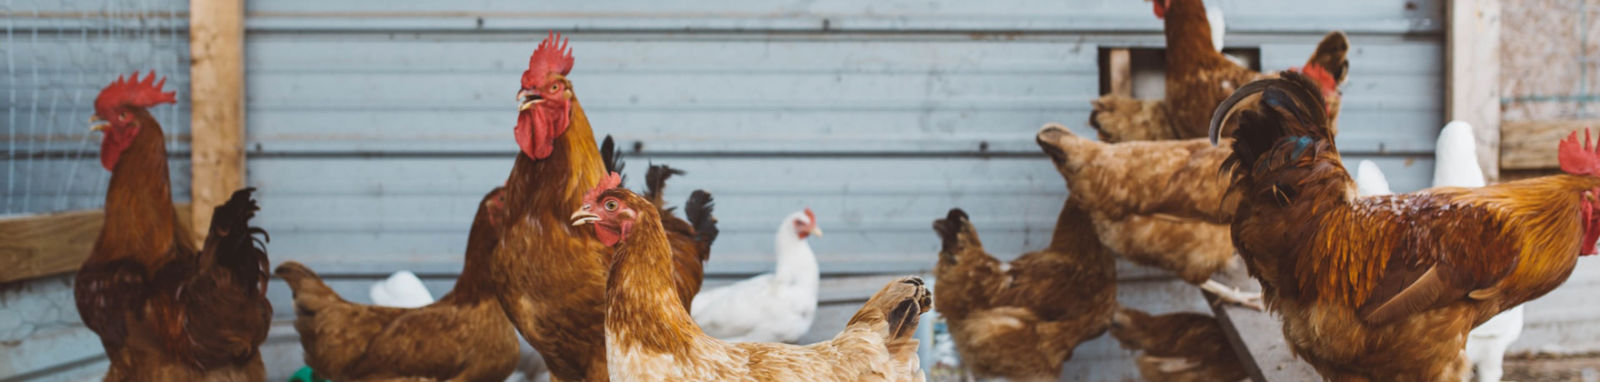 group of Rhode Island Red chickens